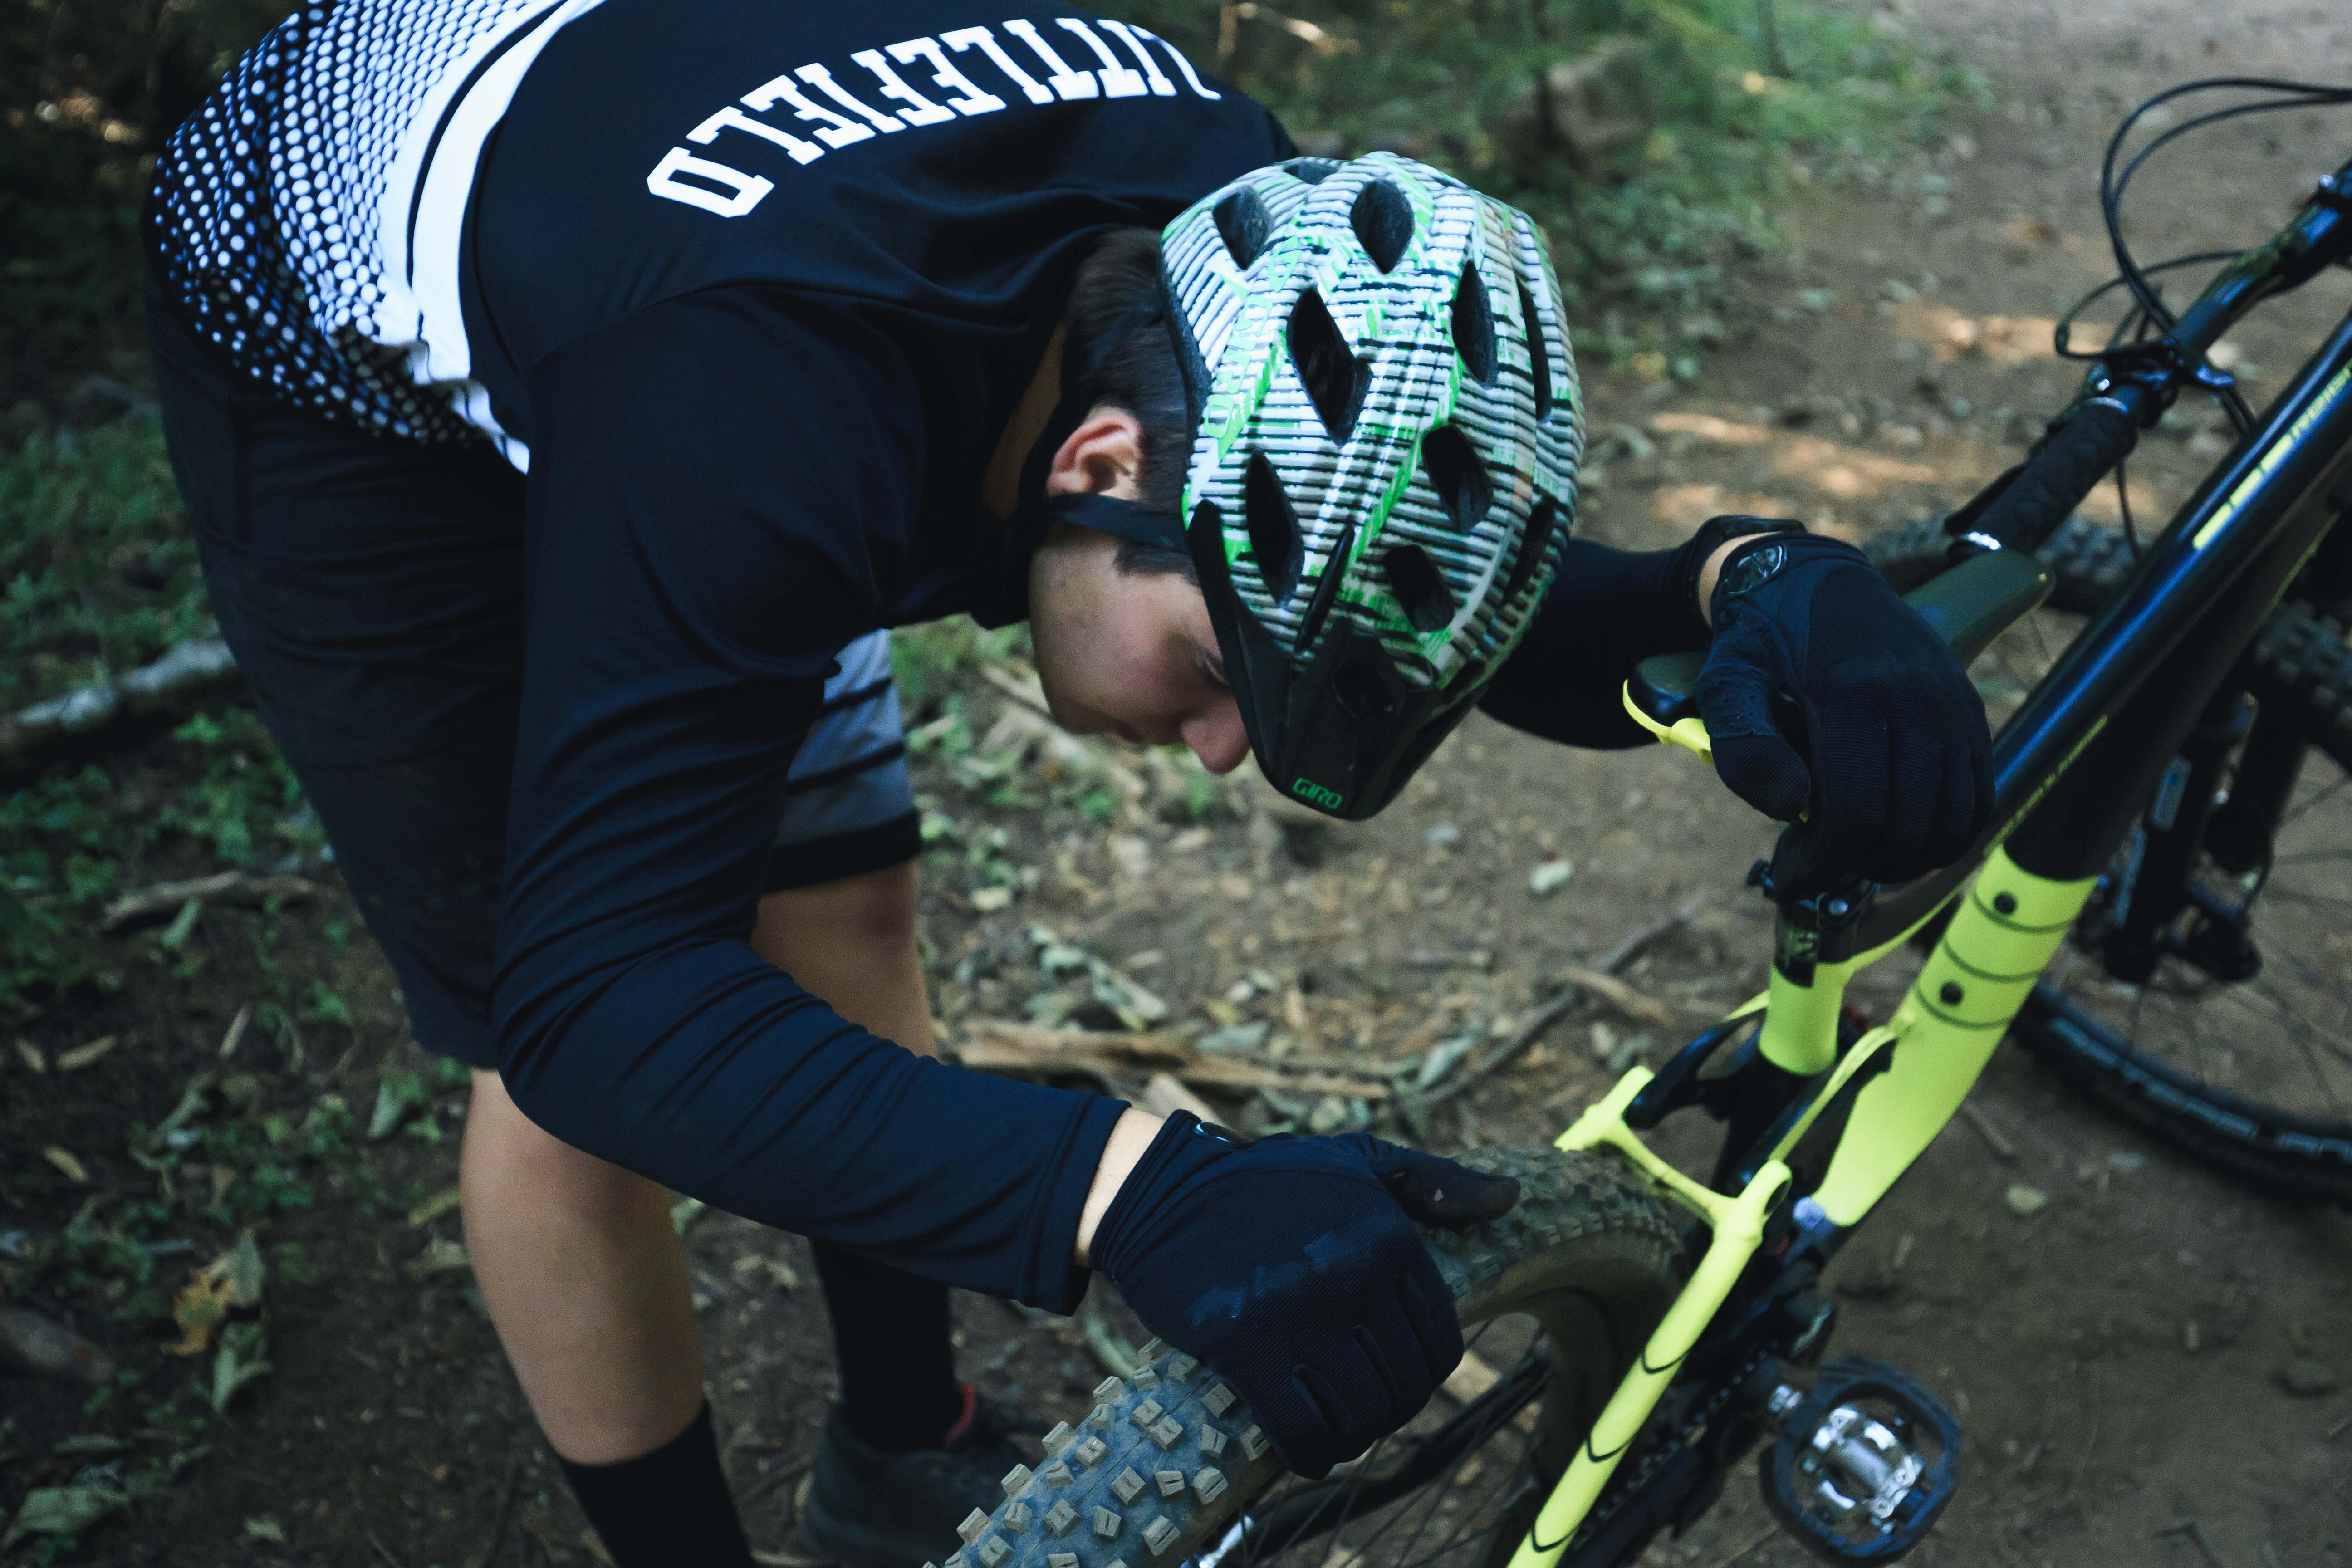 Mtb Tire Pressure Everything You Need To Know Full Speed Ahead